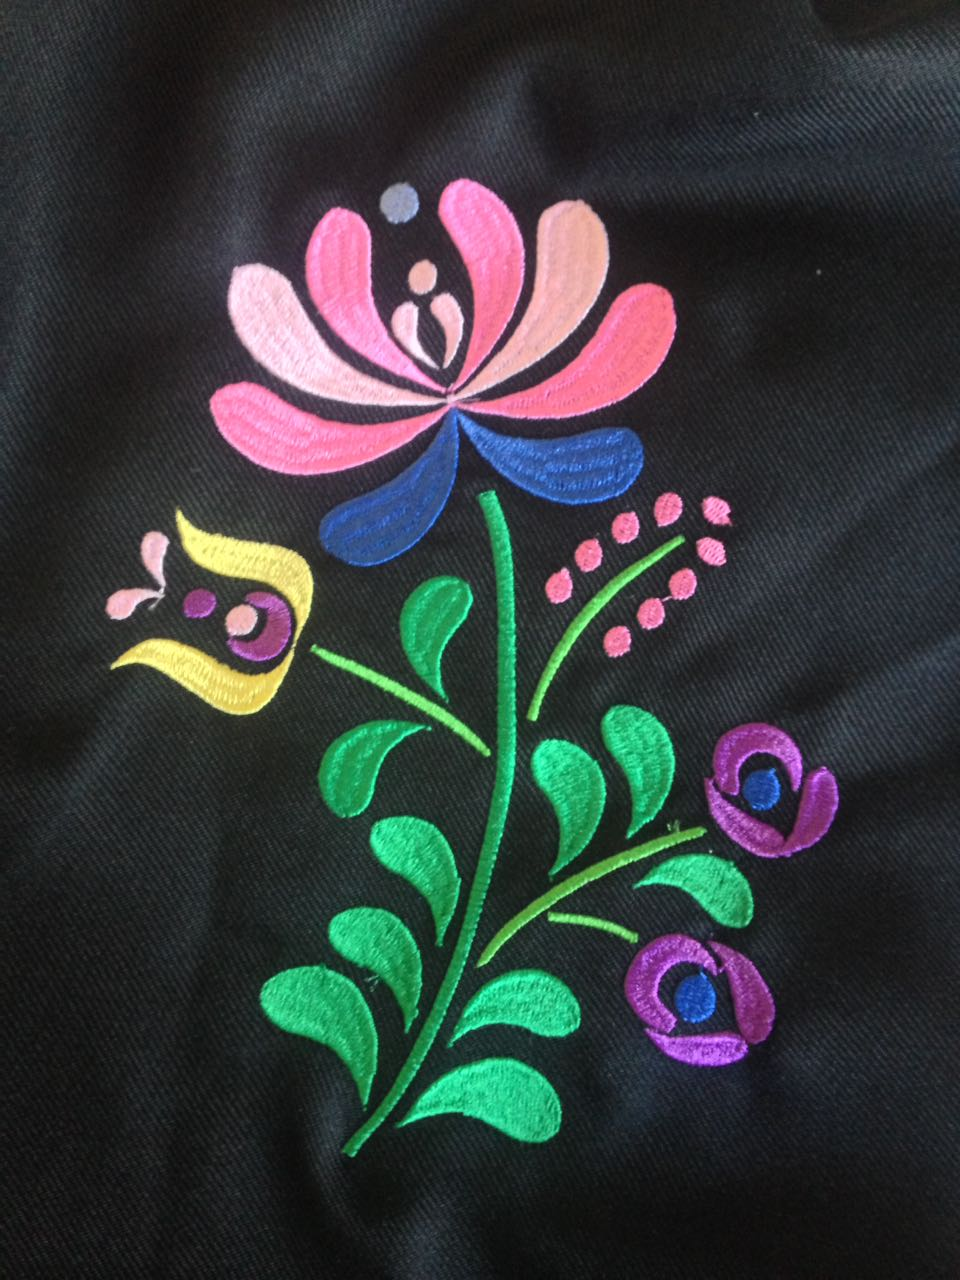 Flower JAZ embroidery design, 195 x 150.2 mm (7.6 'x 6') embroidery matrix, different sizes embroidery design Embroidery matrix, Mexican design example image 4